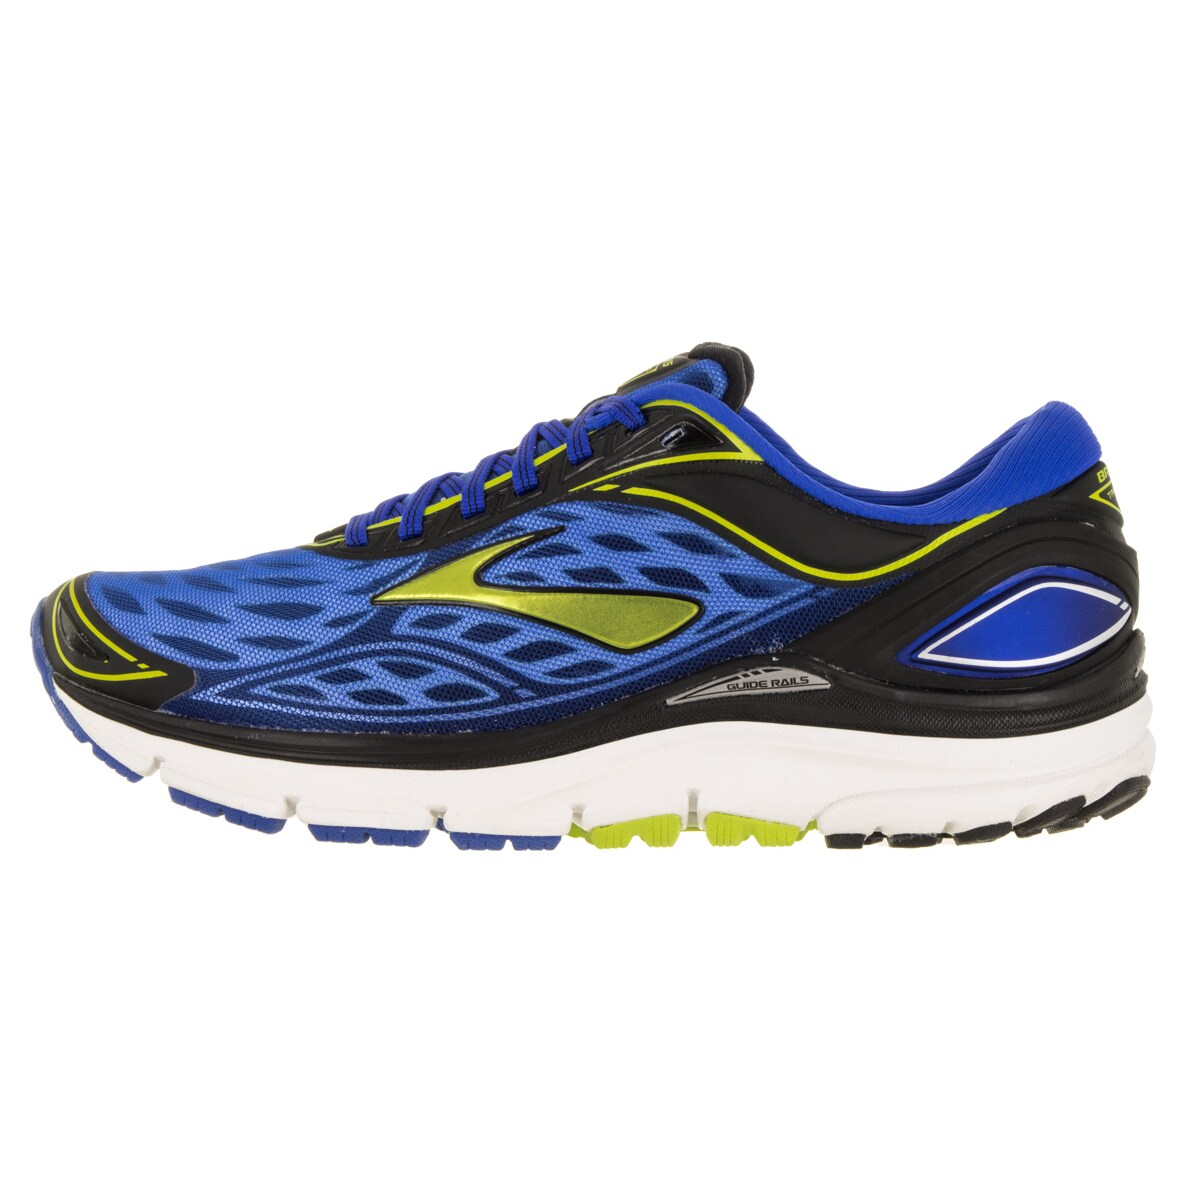 775b86addbf Shop Brooks Men s Transcend 3 ElectricbrooksBlue Limepunch B Running Shoe -  Free Shipping Today - Overstock - 12321070